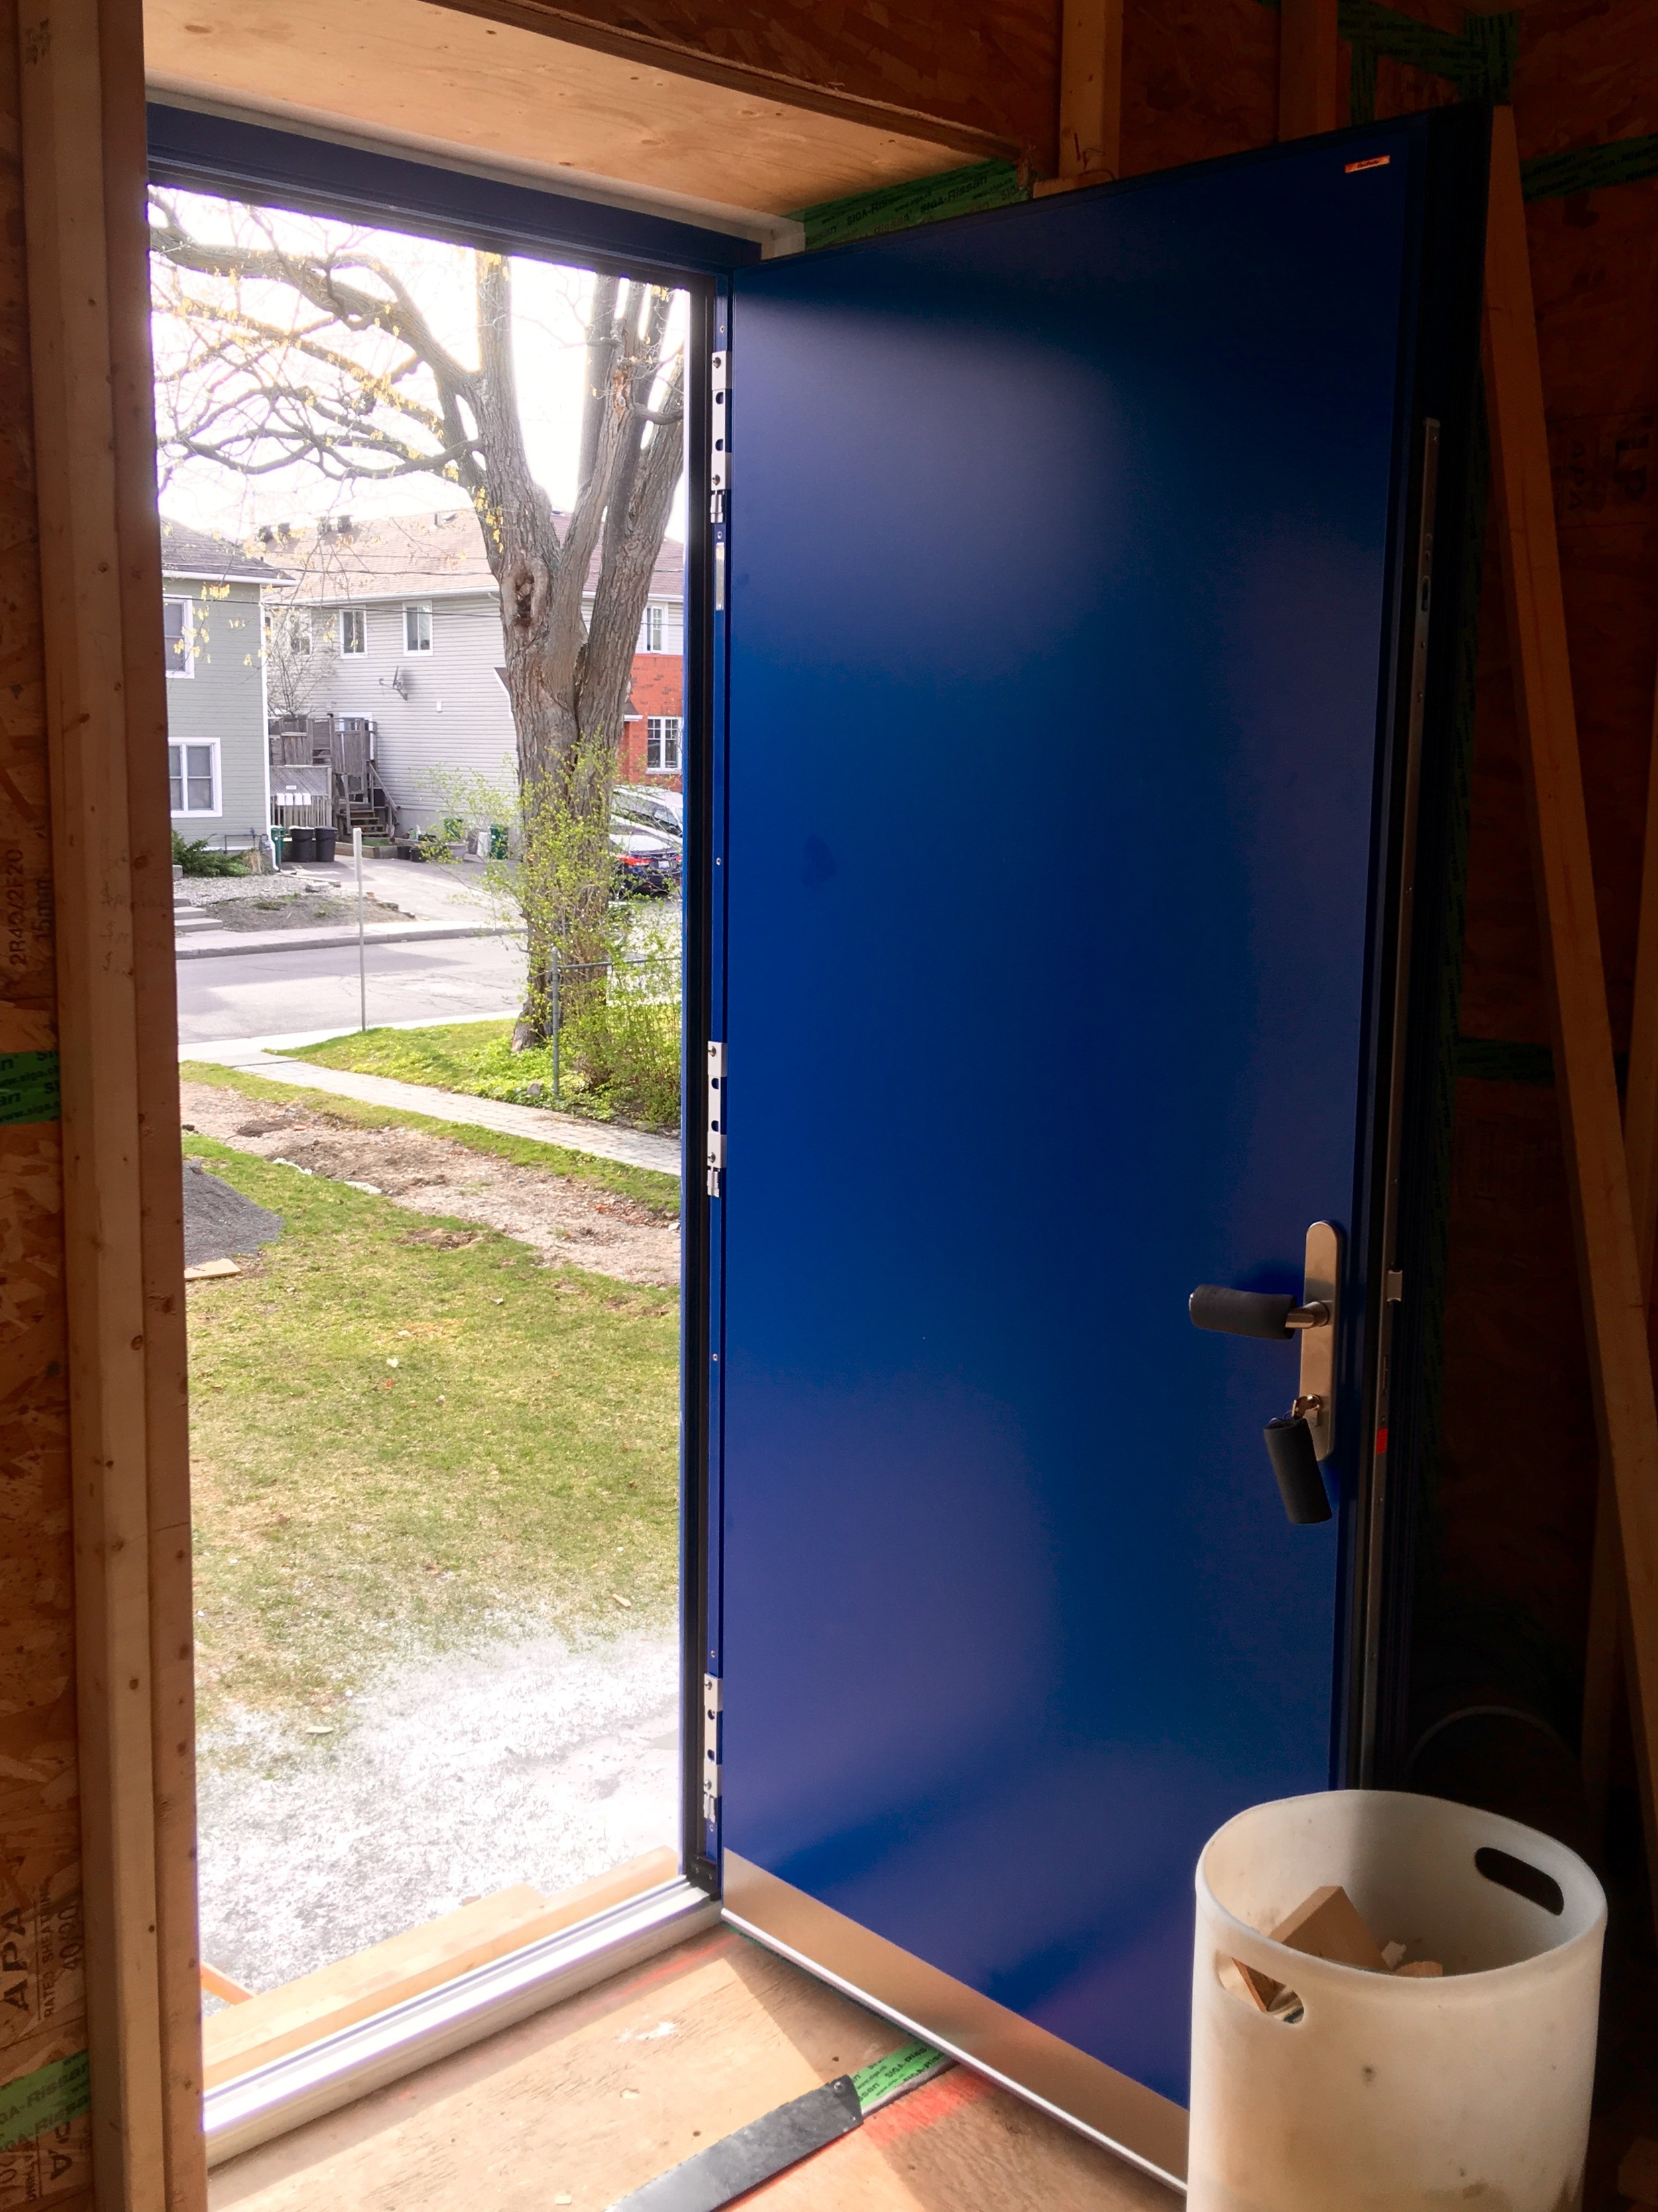 Our new blue doors will be open for all this coming Saturday!